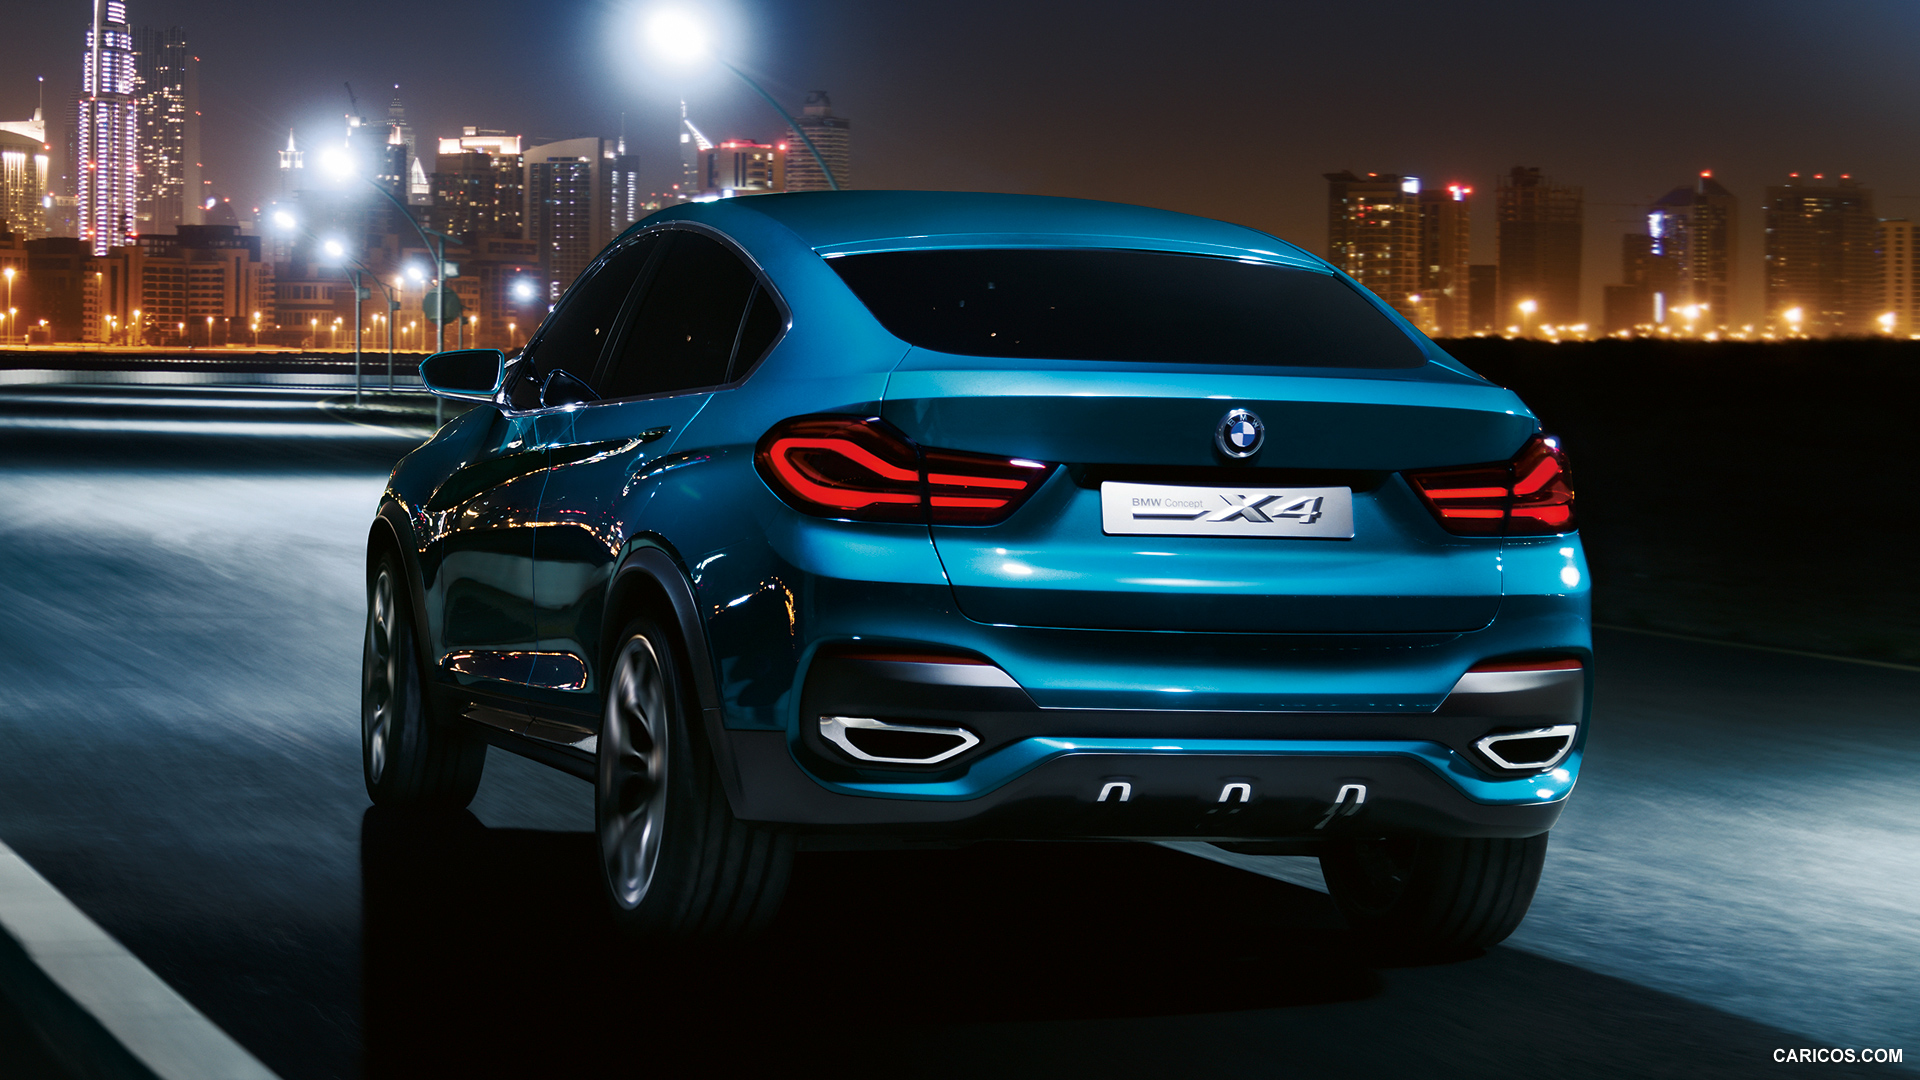 1920x1080 - BMW X4 Wallpapers 4